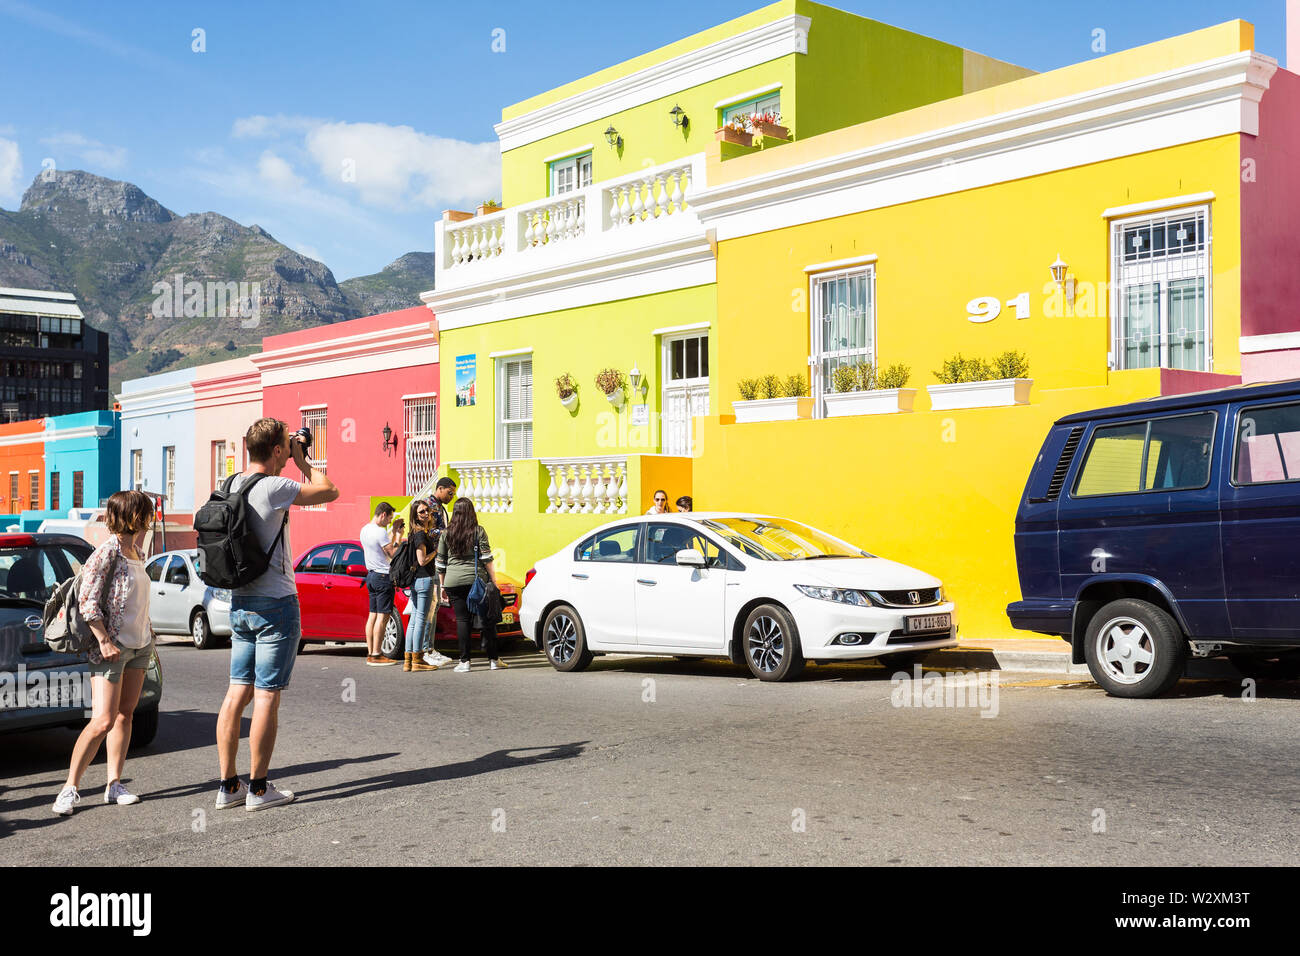 male caucasian tourist taking a photo of a colourful row of houses while standing in a street in Bo Kaap, Cape Town, South Africa while sightseeing Stock Photo